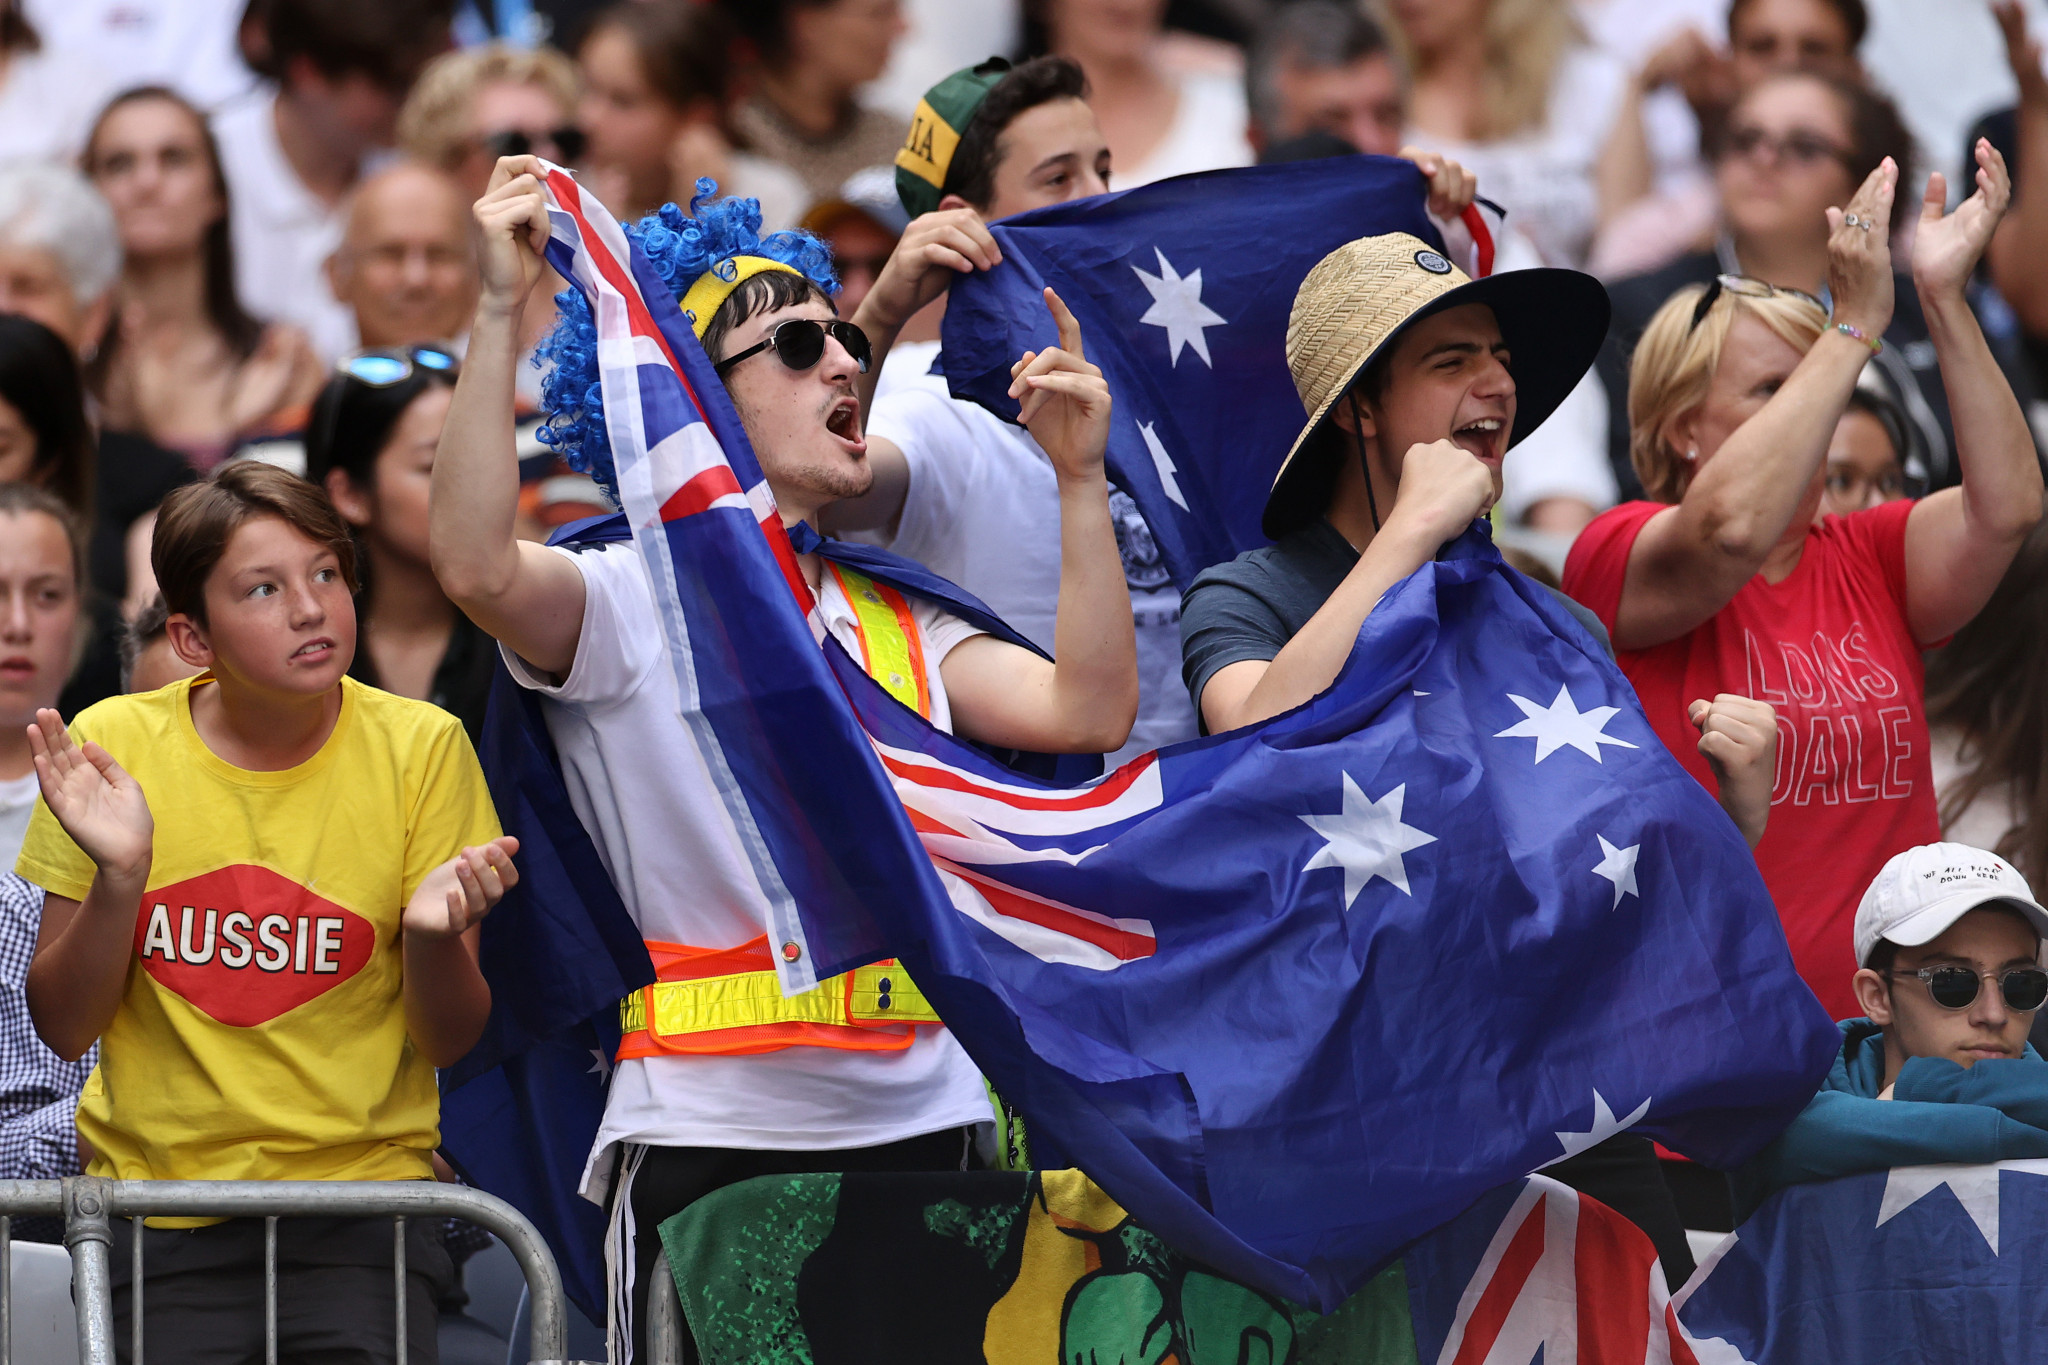 Home fans cheer on Australian wildcard Alex Bolt, who took fifth seed Dominic Thiem to five sets before defeat ©Getty Images